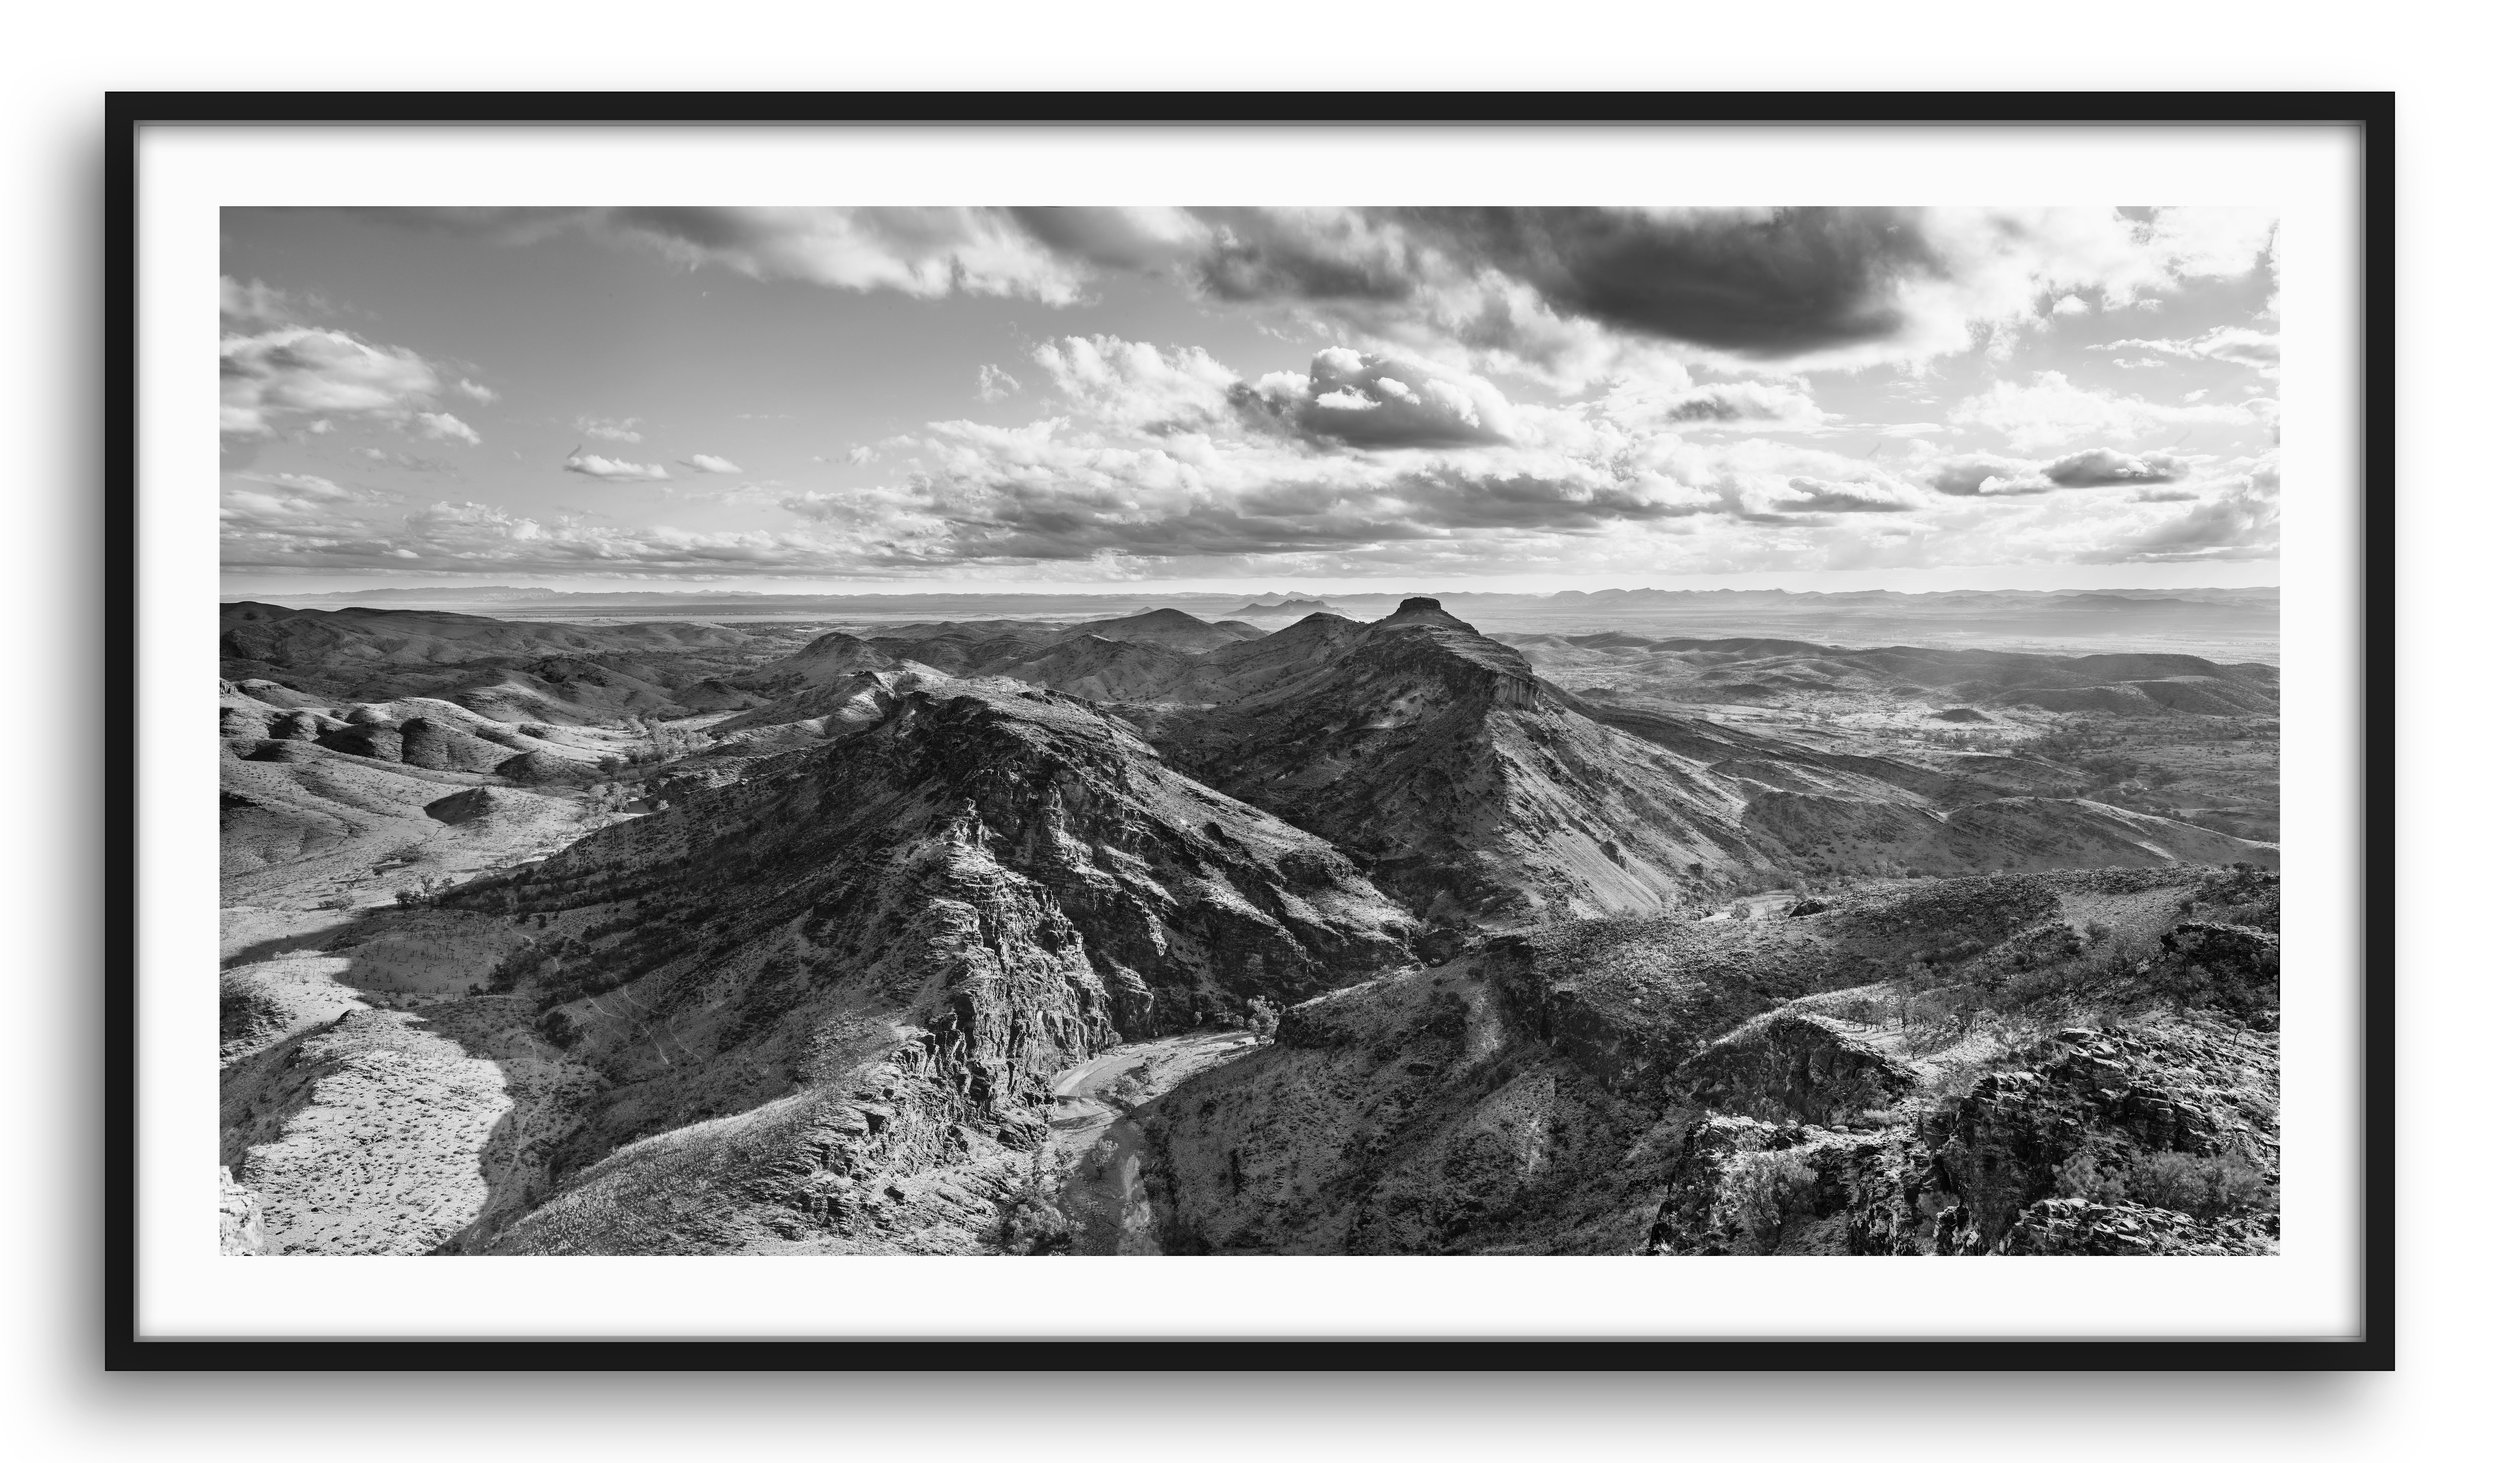 """""""GRAVITY """" Series   This series captures the raw beauty of the Flinders Ranges in South Australia and the confronting nature of its scale in time. With a geological history that is as old as complex life on earth, the landscape and it's duration prompts us to explore the idea of our own brief flash of existence.  The revolutions of our earth within the universe and the erosion of a prehistoric mountain range are created by the forces of gravity that act throughout our universe and show us the ever changing nature of life. This landscape and it's context gives us a perspective far greater than our own short life and inspires.   Framed and unframed prints are available from $285."""